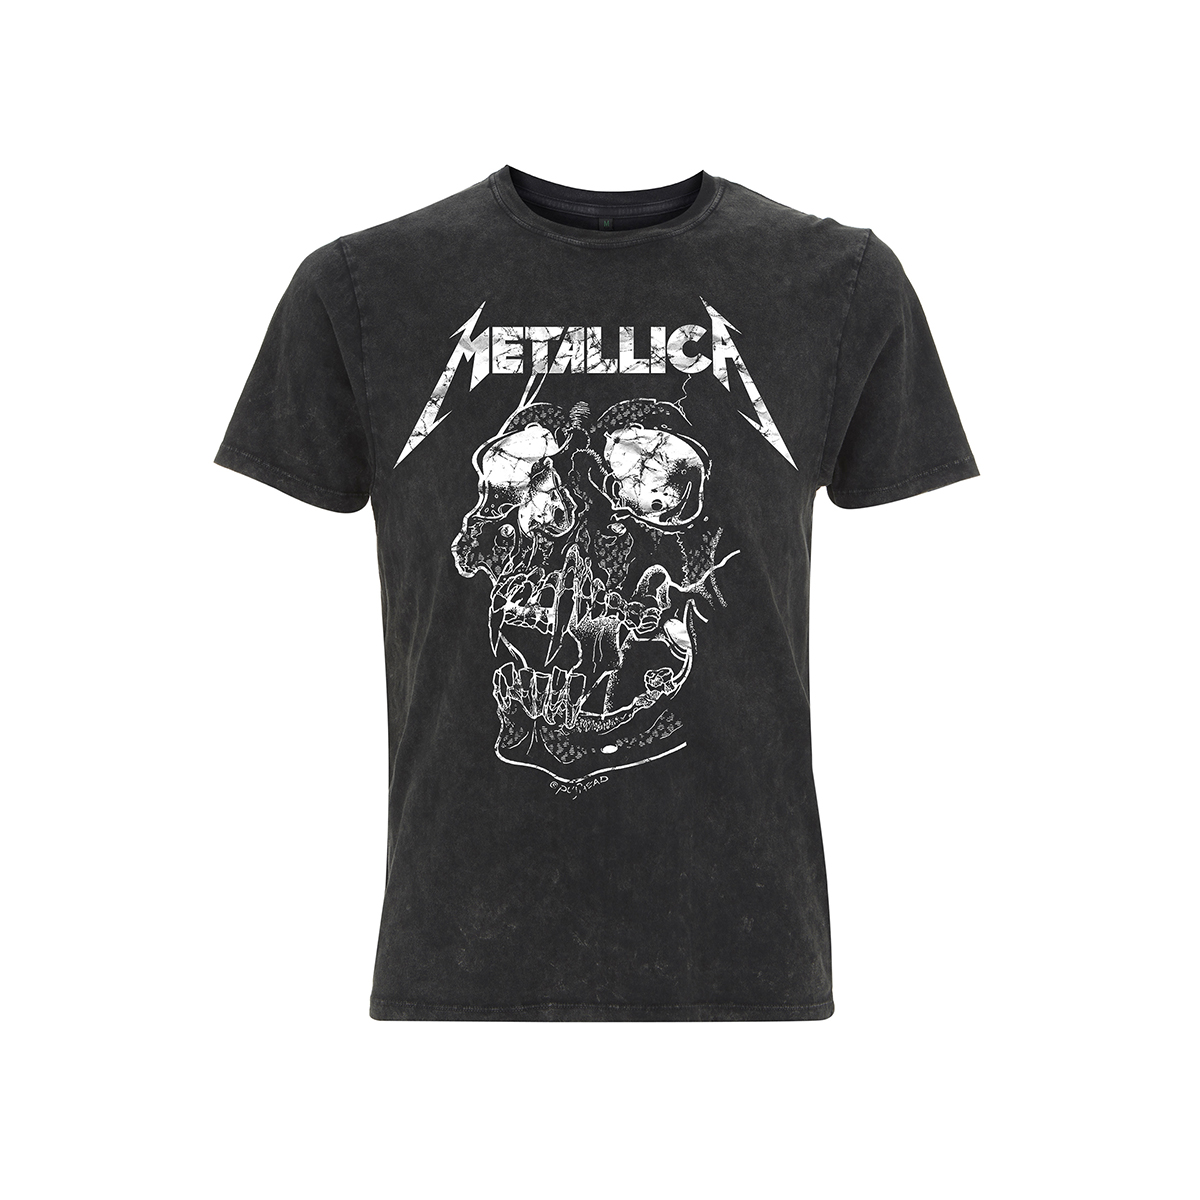 Shortest Straw – Acid Wash Black Tee - Metallica